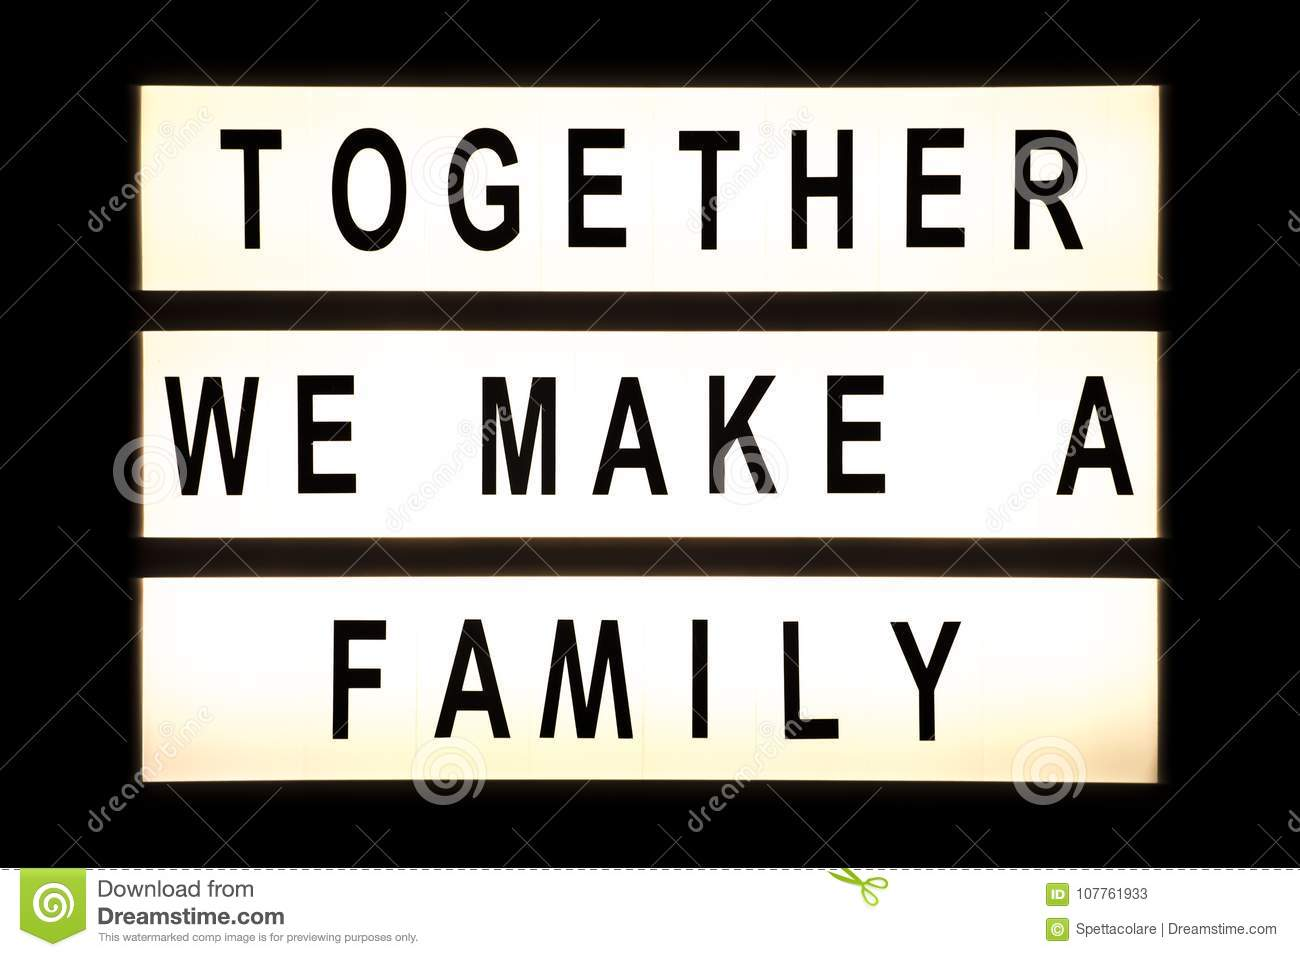 Together We Make A Family Hanging Light Box Stock Image - Image of